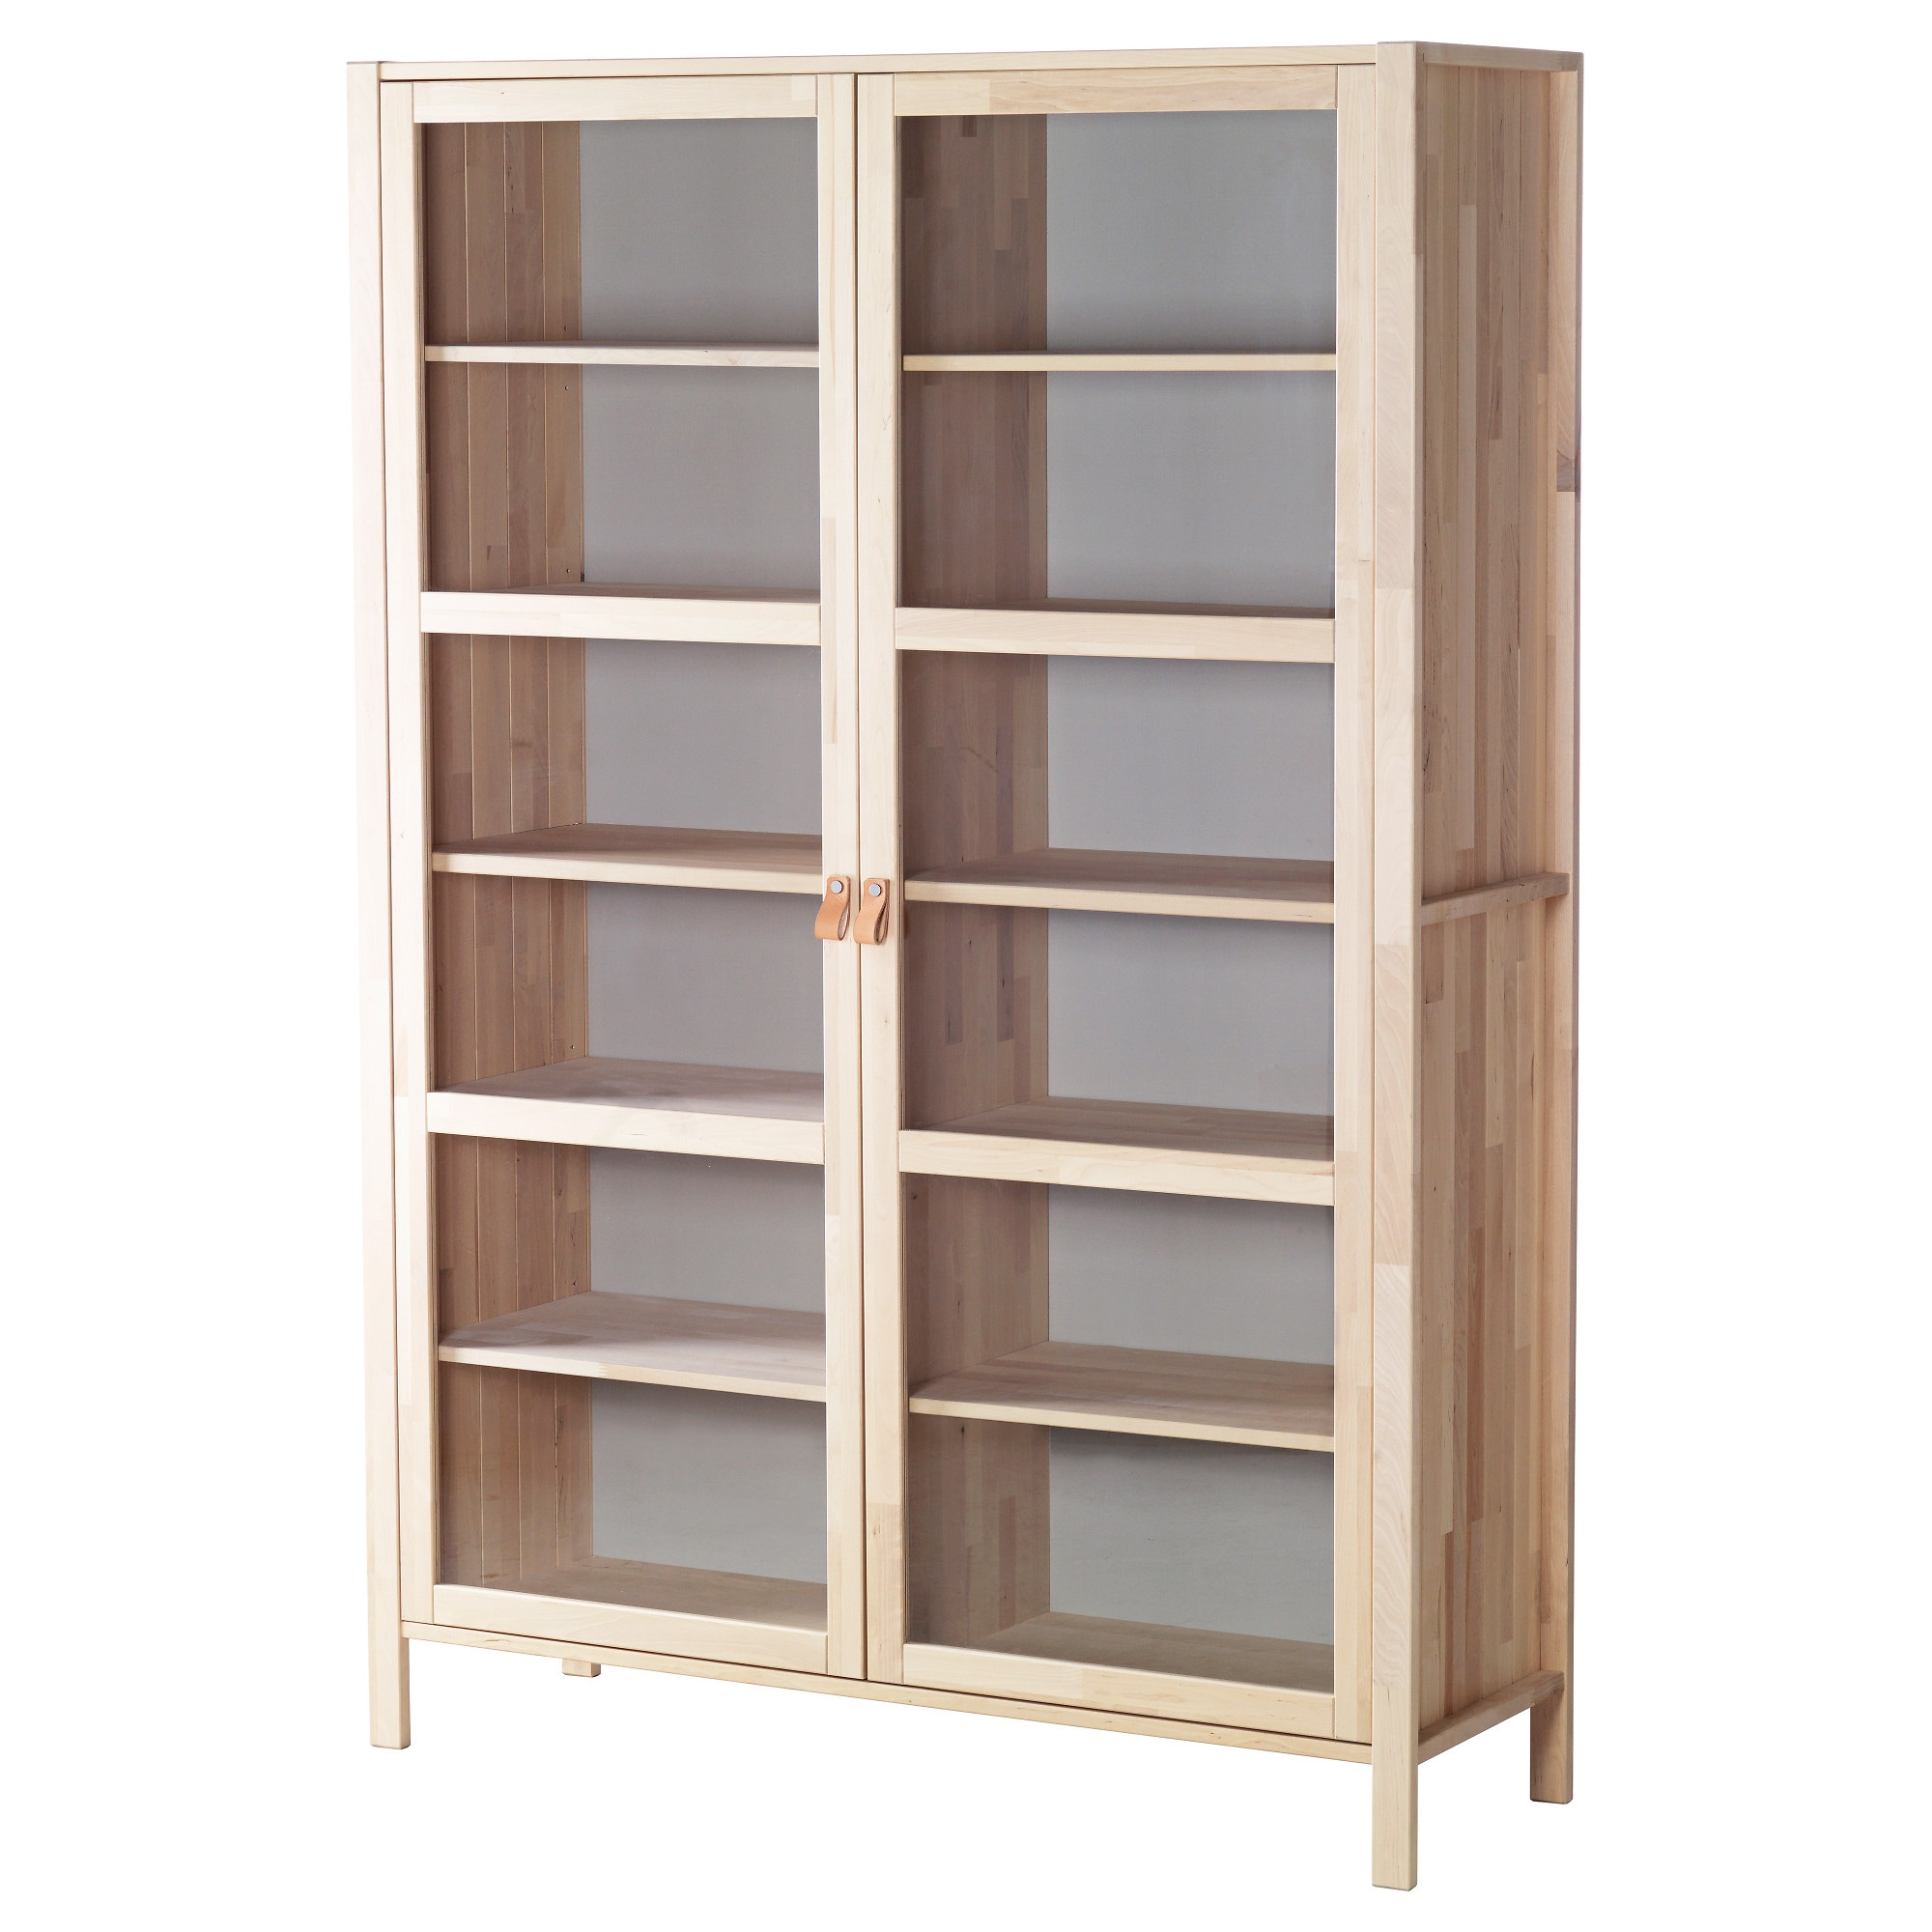 Ikea dining room storage - Bjrksns Glass Door Cabinet With 2 Doors Birch Width 48 38 Dining Room Cabinets Ikea